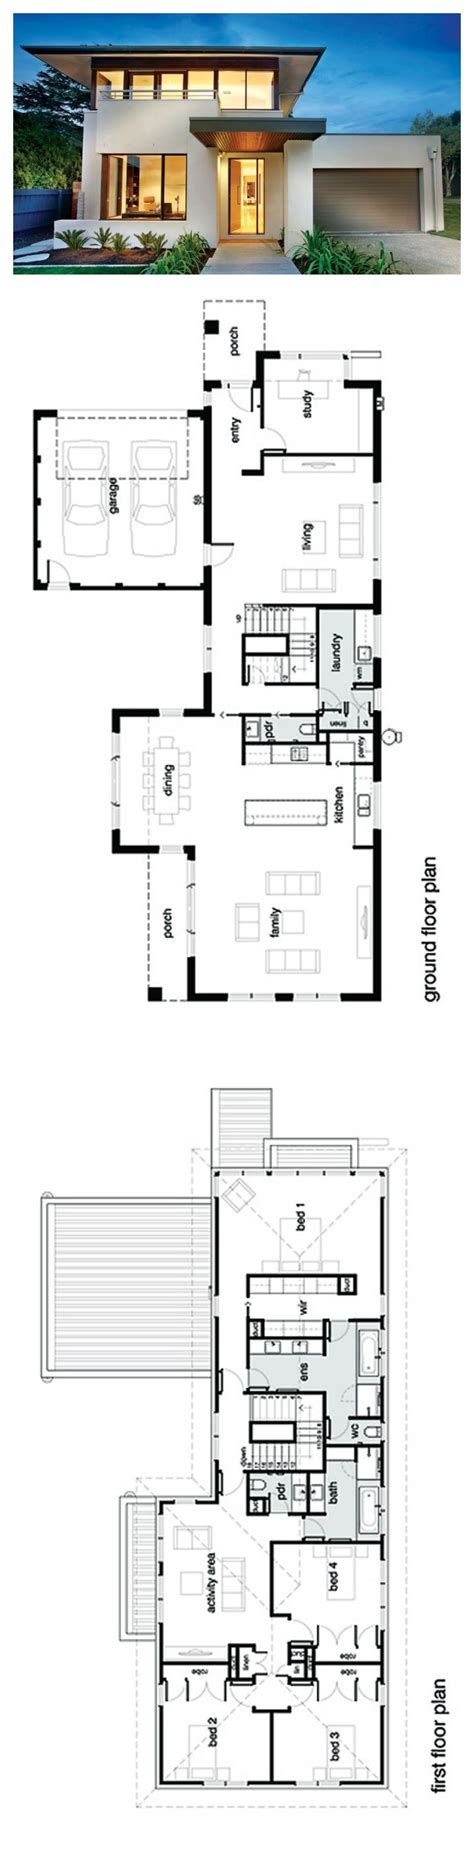 contemporary home design layout best 25 modern house plans ideas on modern floor plans modern house floor plans